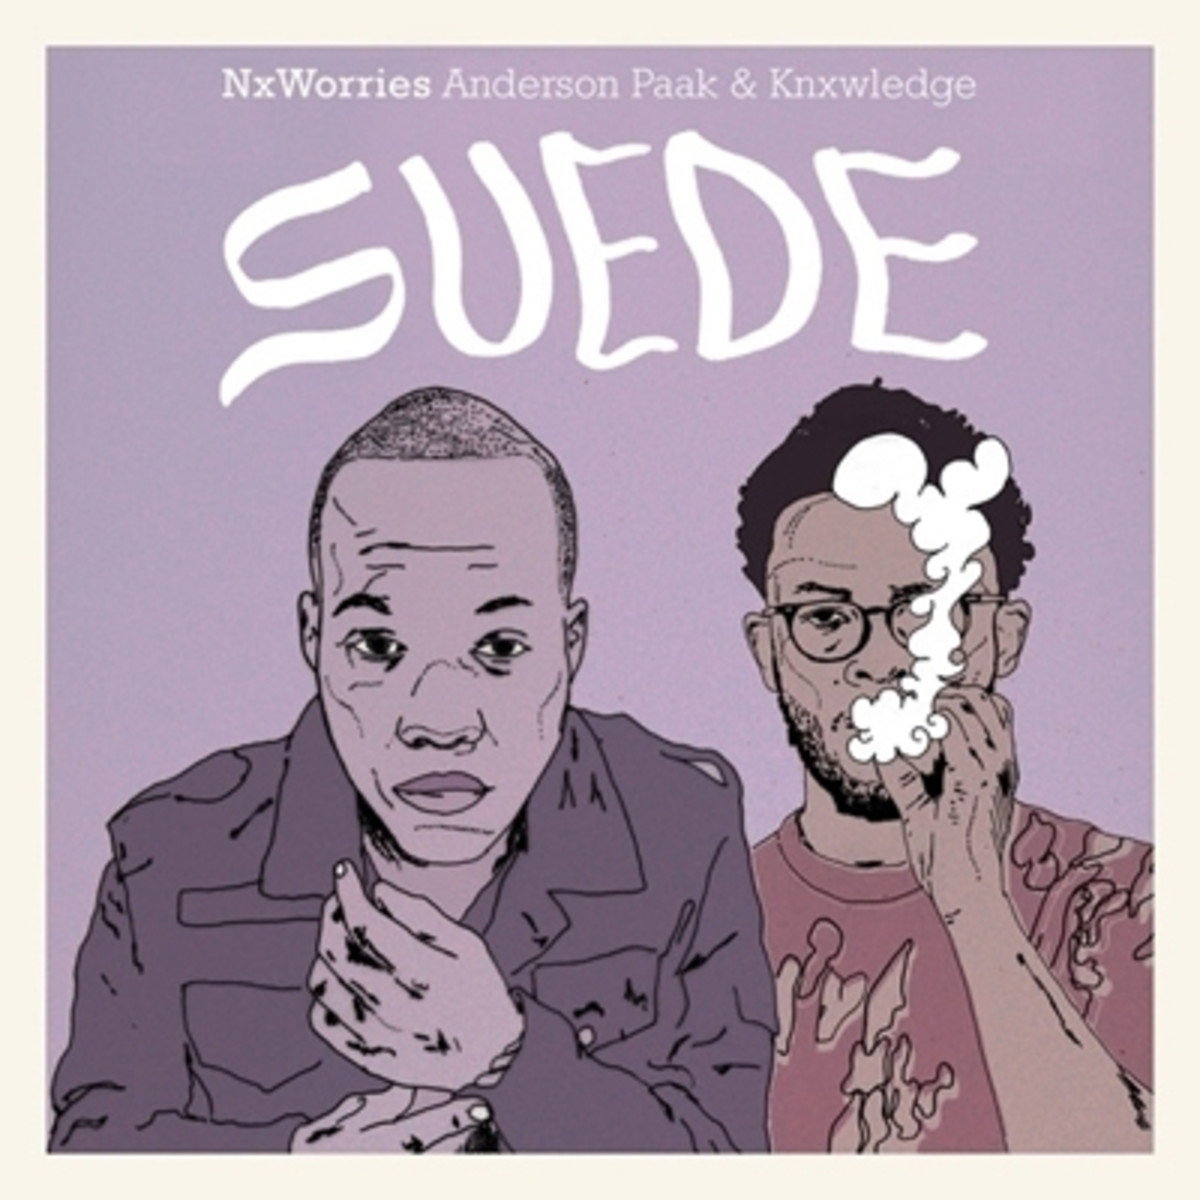 nxworries-suede-album-cover.jpg